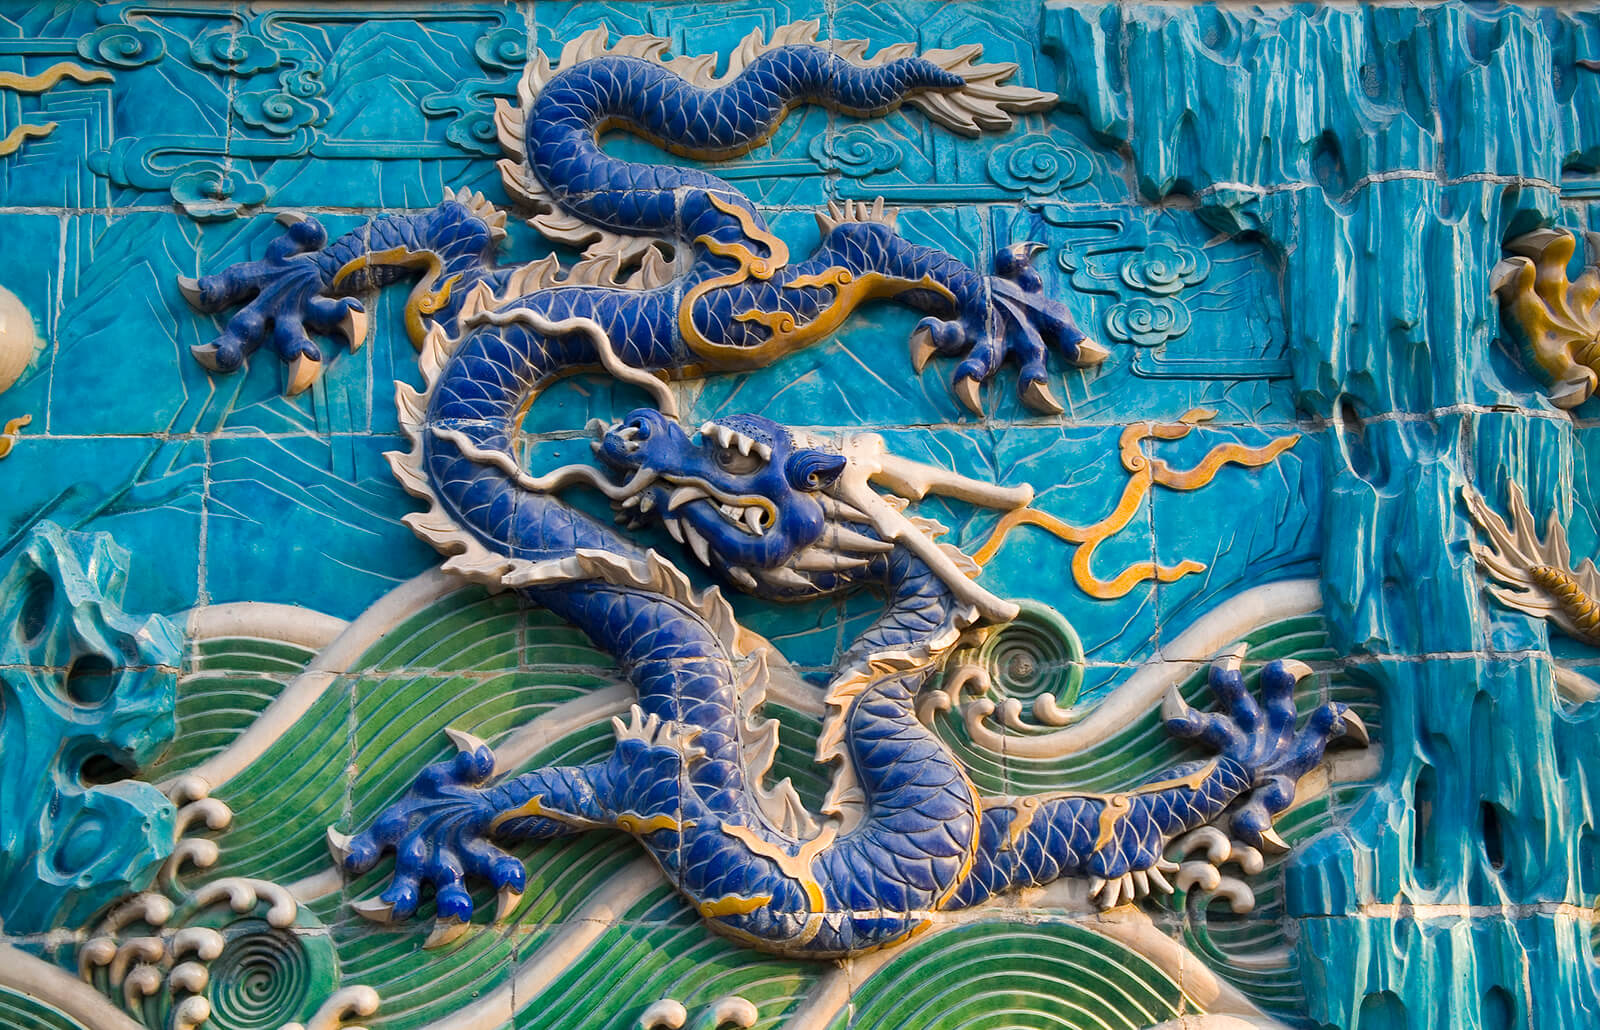 Blue Dragon in Chinese Astrology | LoveToKnow